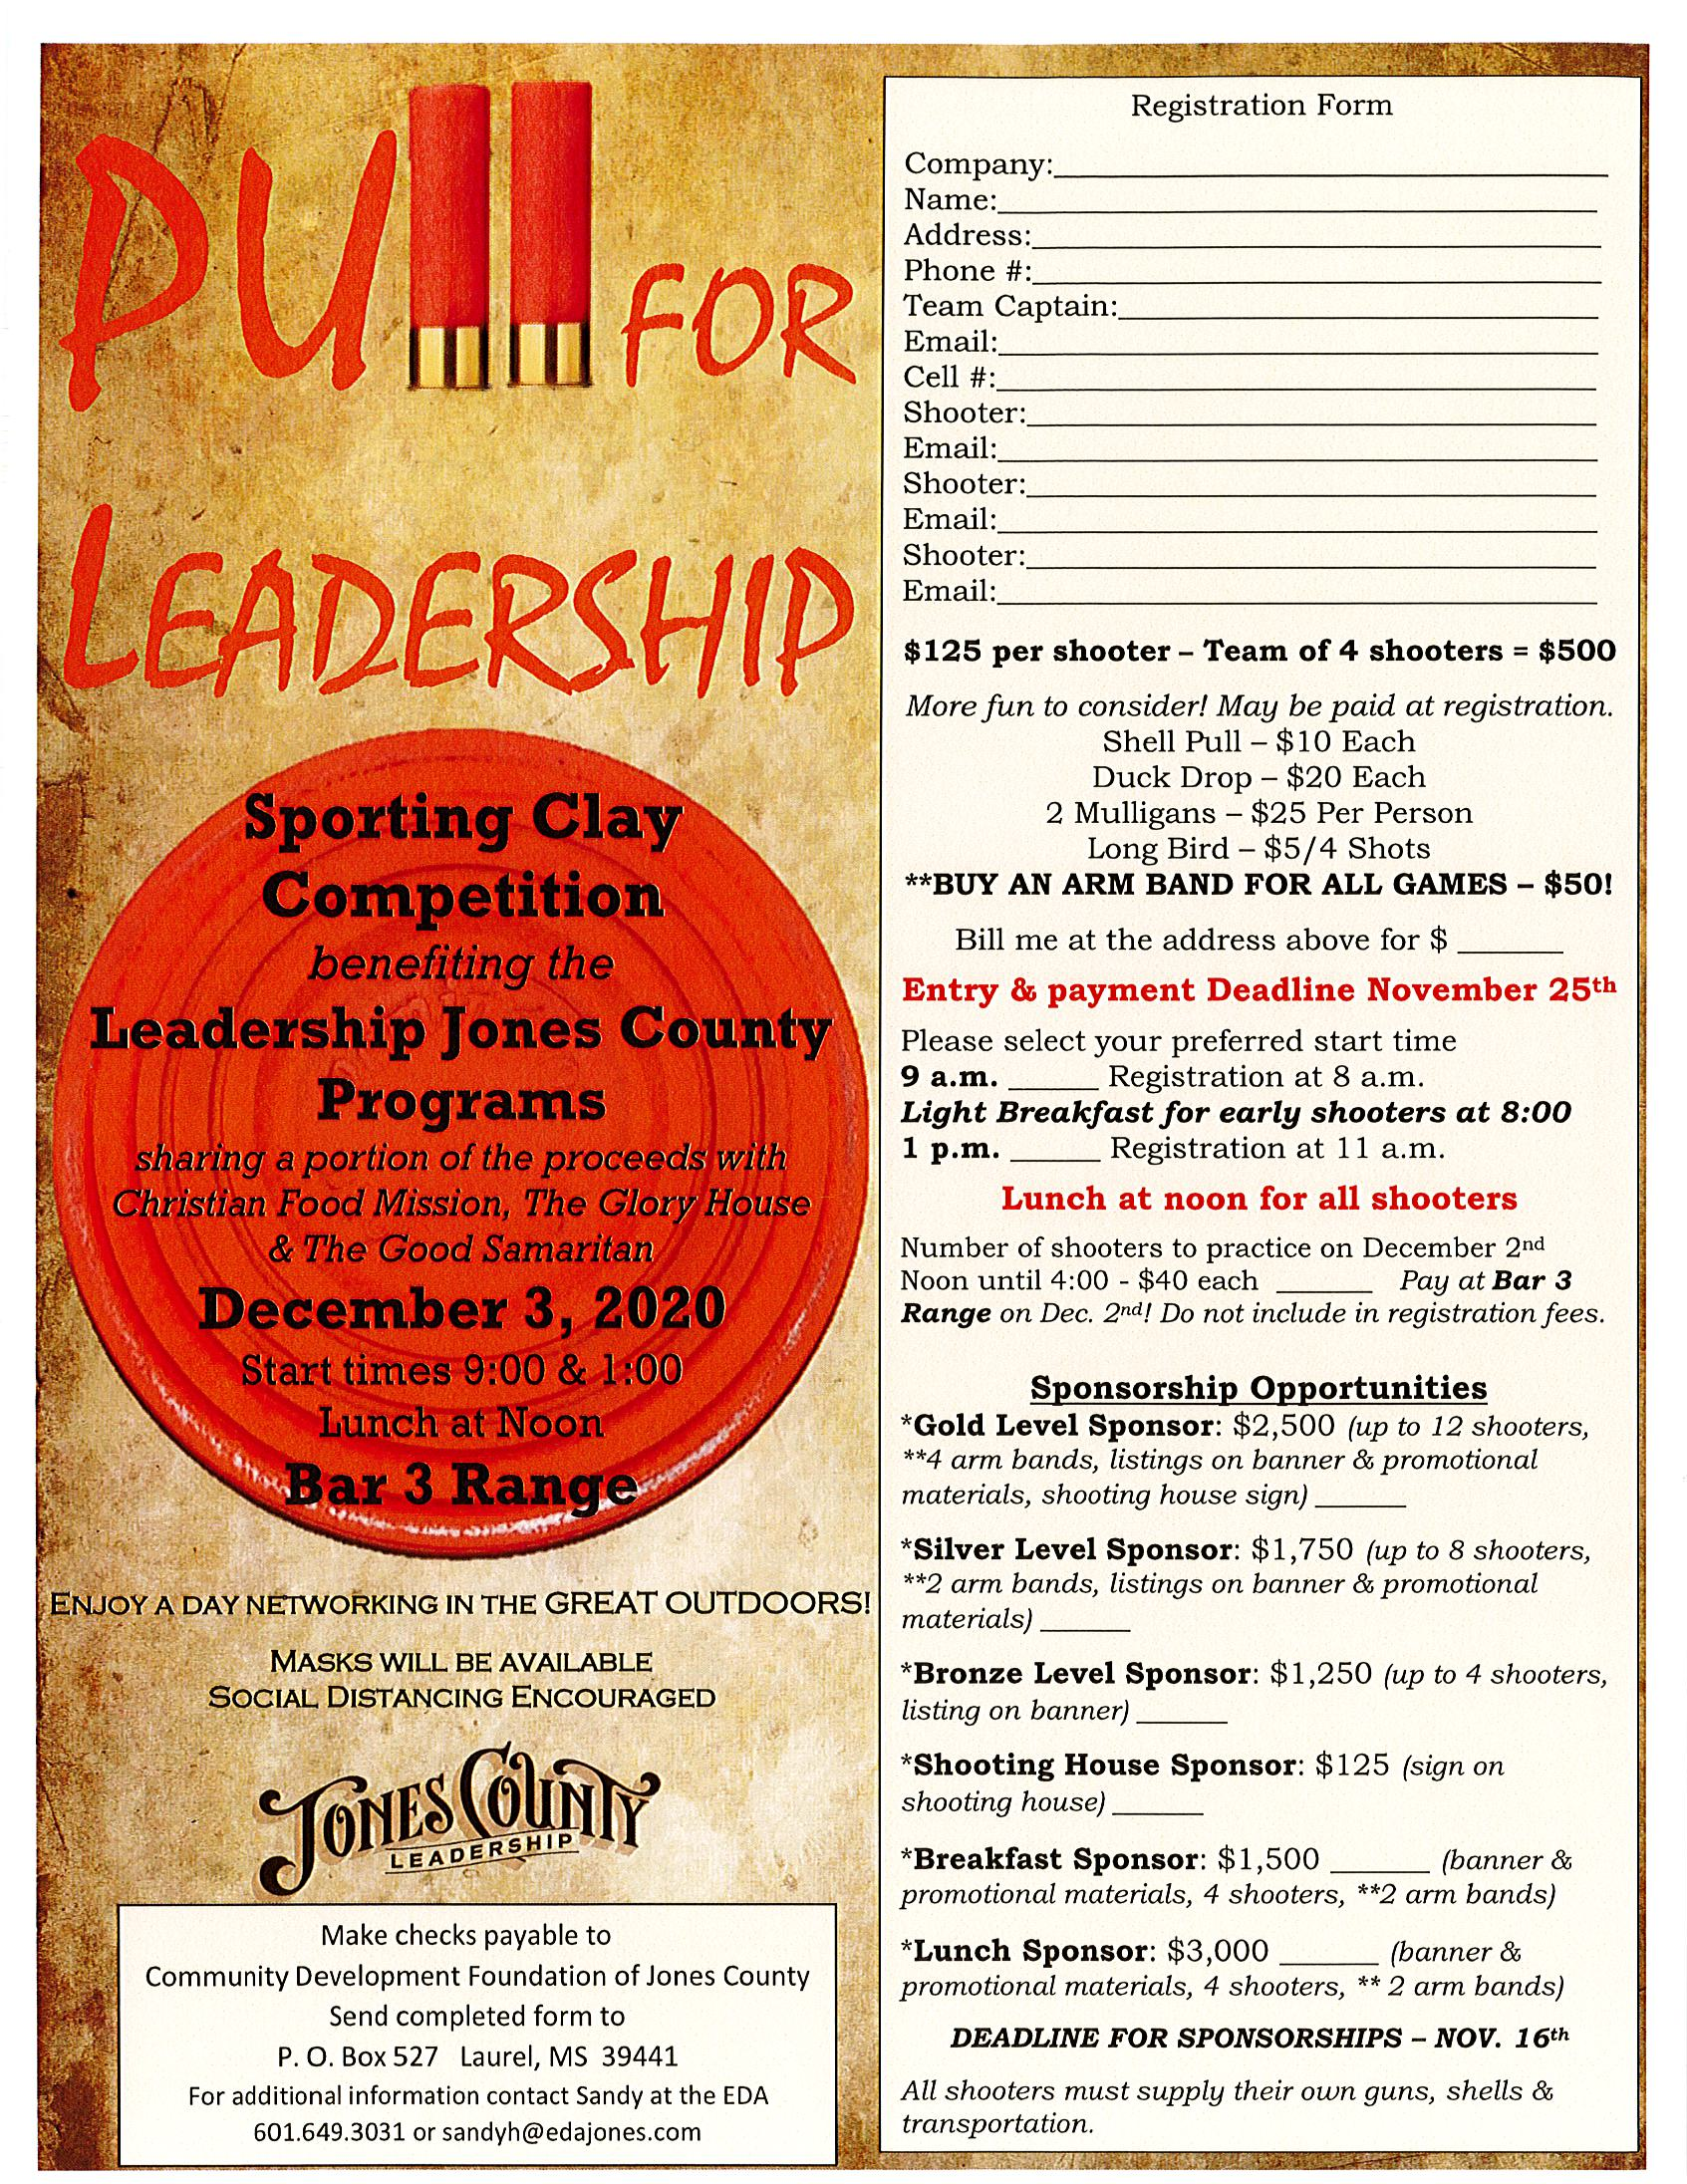 The City of Laurel, Pull for Leadership Sporting Clay Competition benefiting the Leadership Jones County Programs